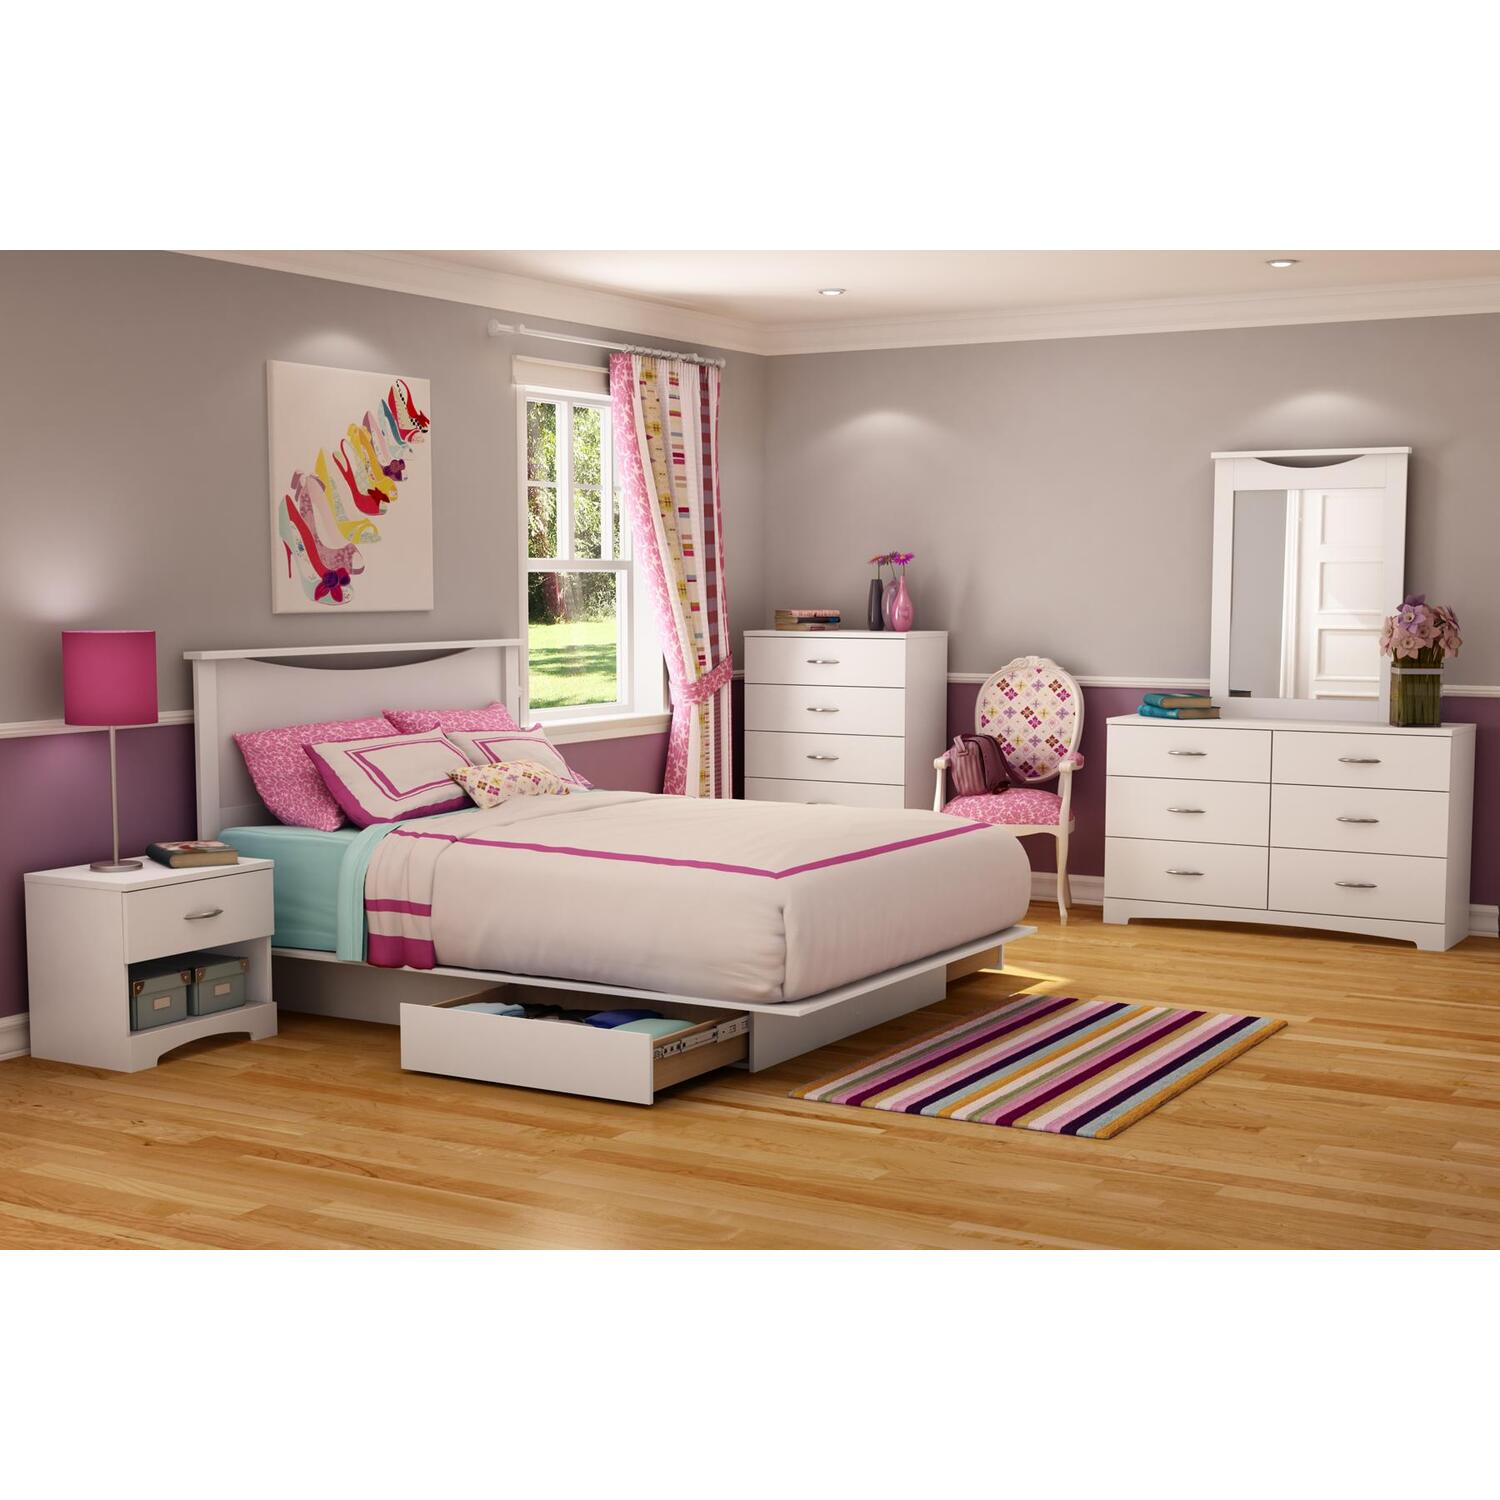 South Shore Step One Full Queen 6 Piece Bedroom Set In Pure White By